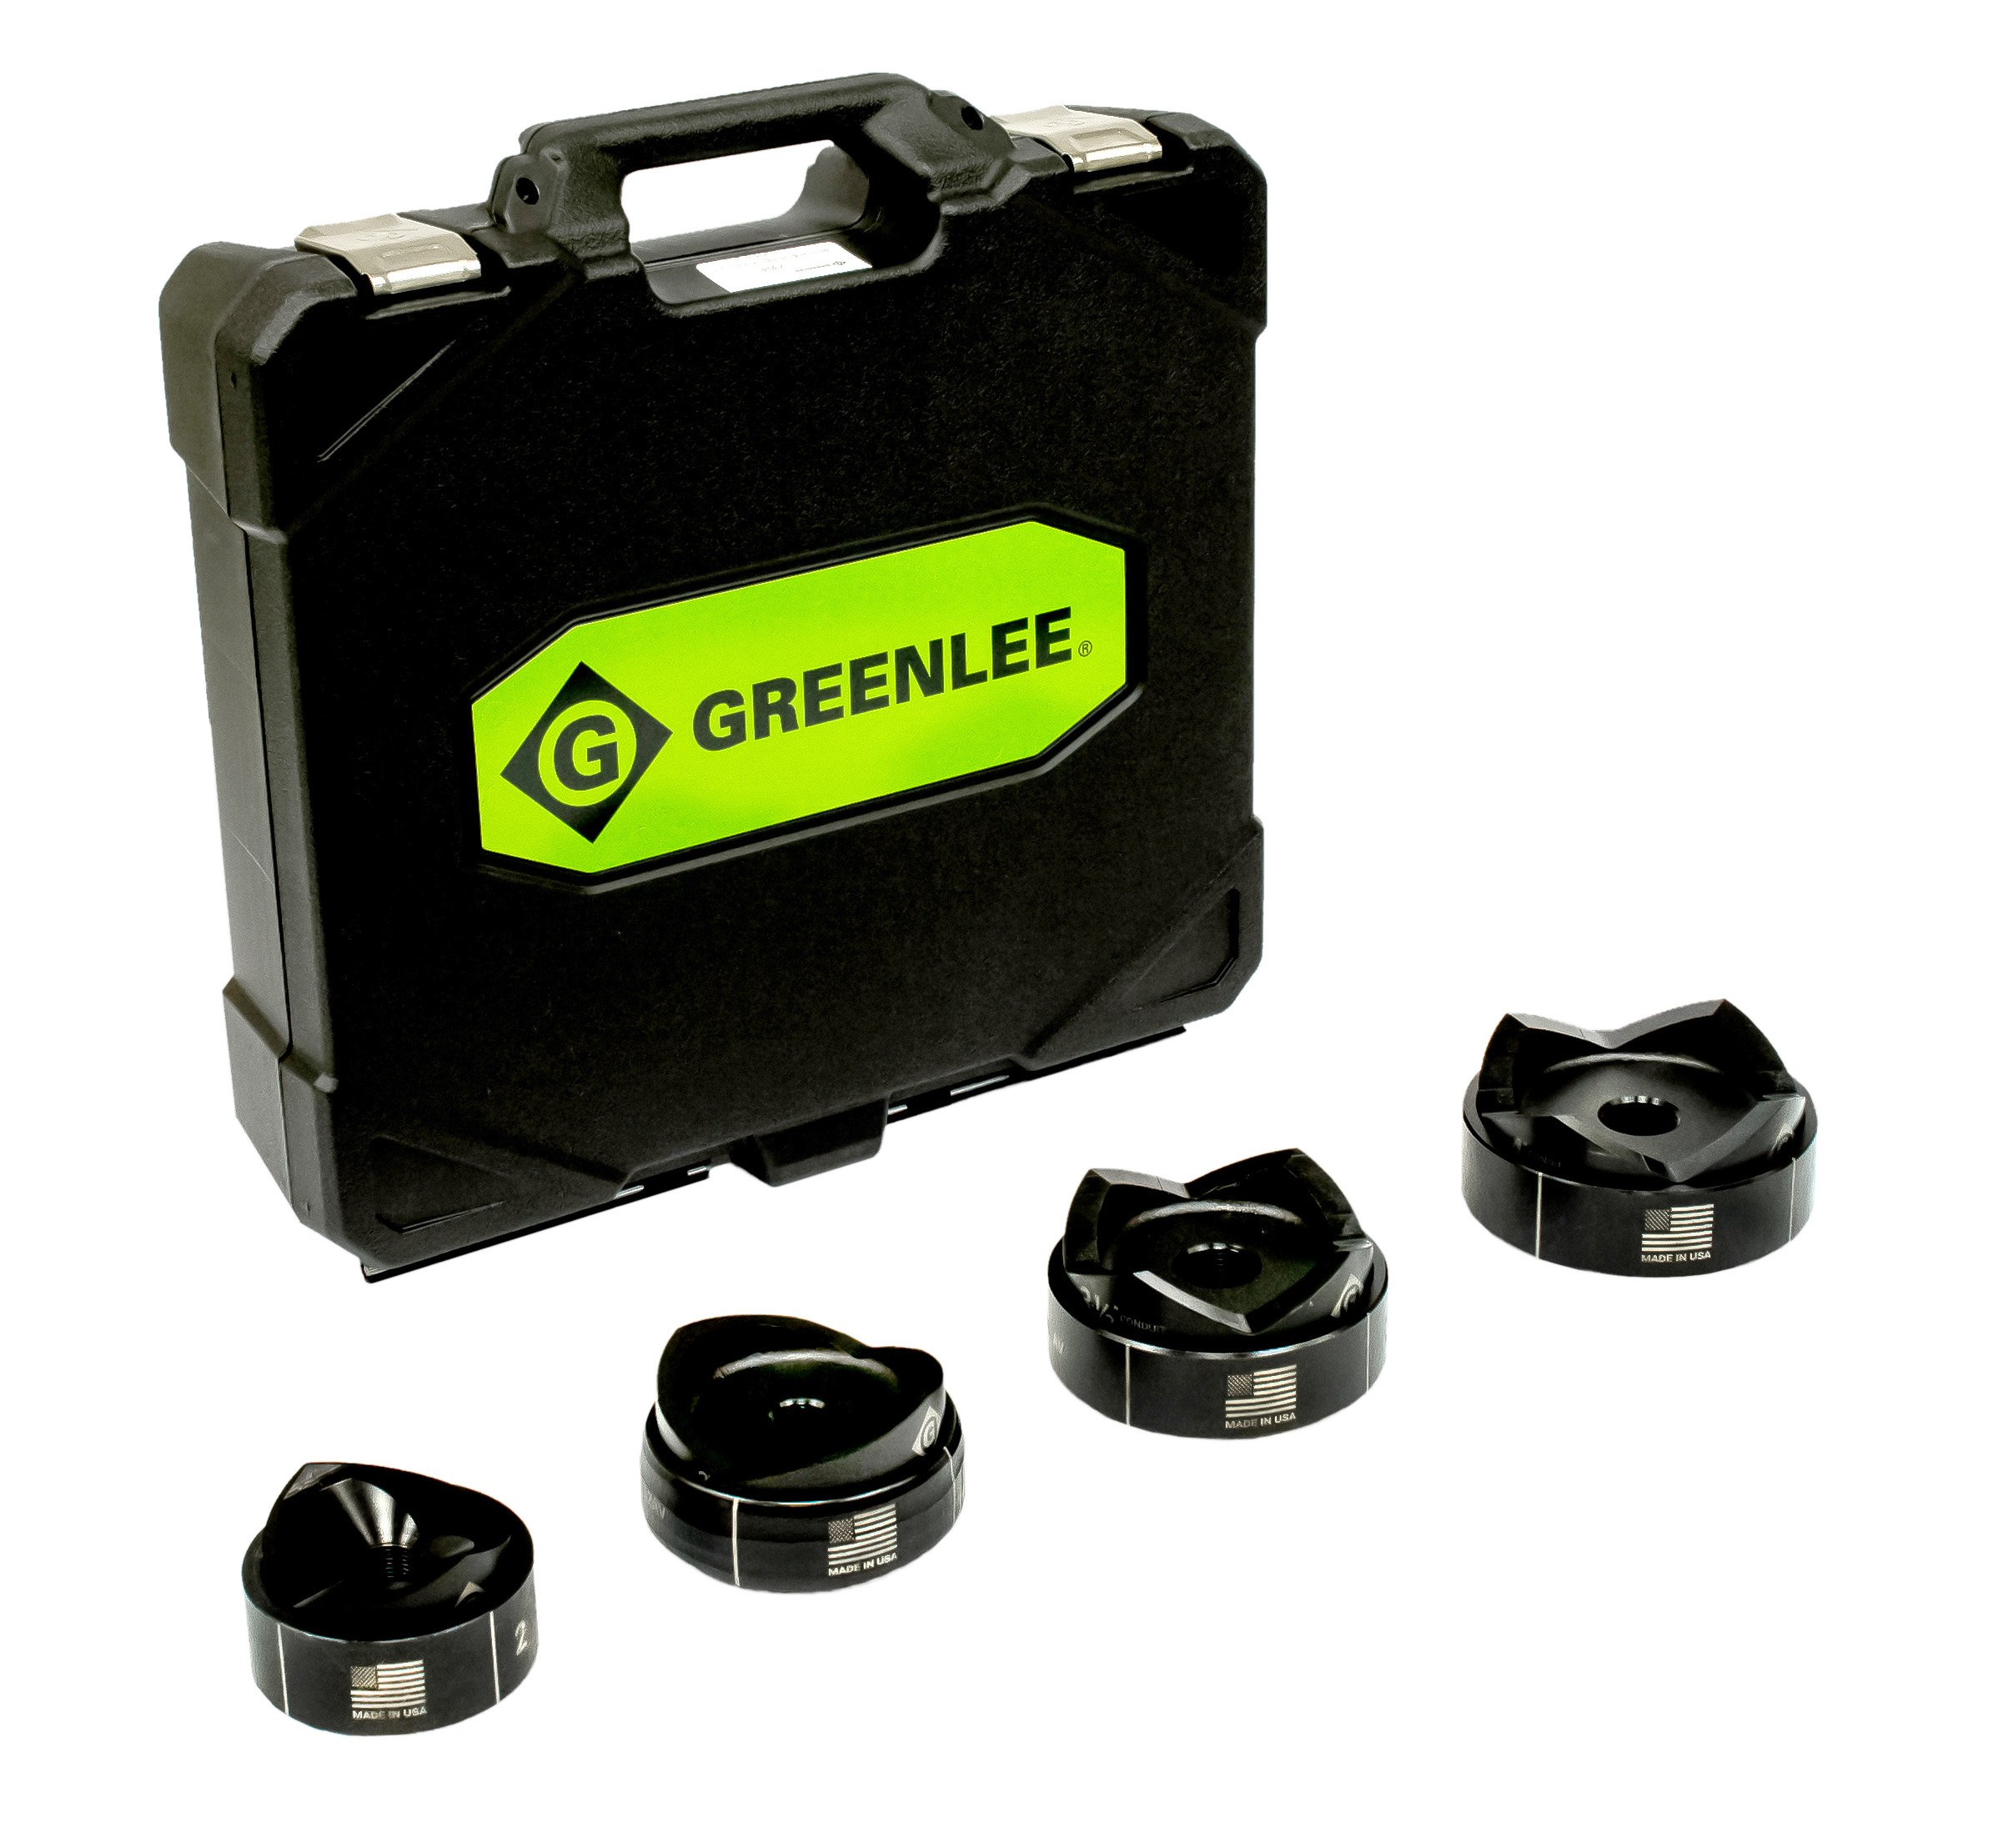 Greenlee 7304 Standard Punches and Dies For 2-1/2 through 4-Inch Conduit by Greenlee